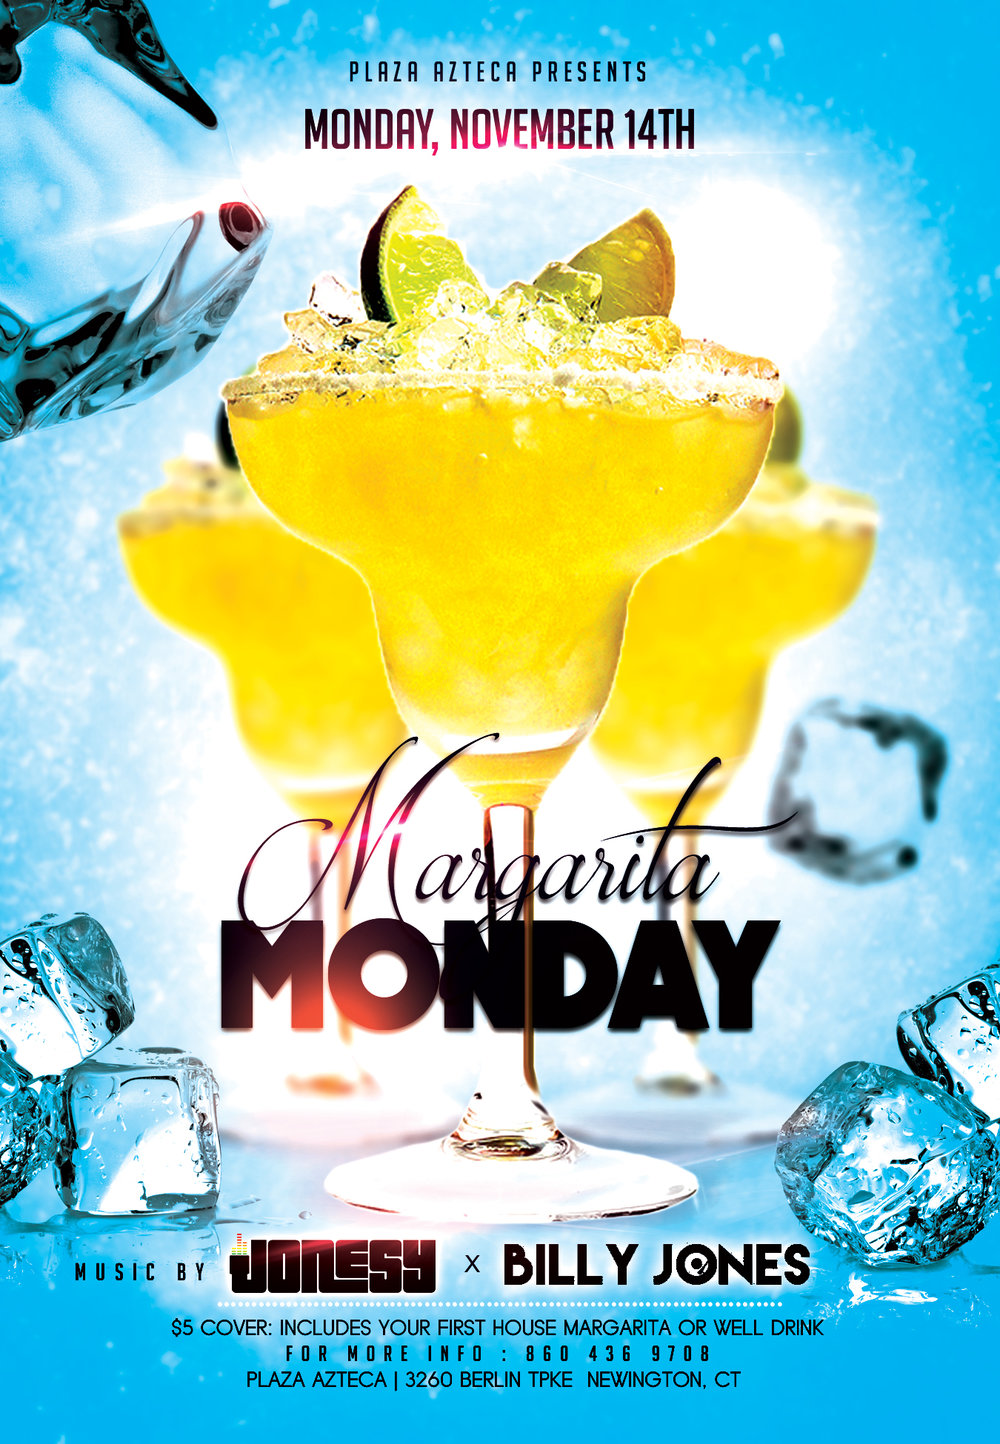 Monday, November 14th join me at Plaza Azteca in Newington, CT for Margarita Monday with music by Billy Jones & yours truly 9pm-close.  $3.99 Margaritas all night long!  Meet me there! $5 Cover.